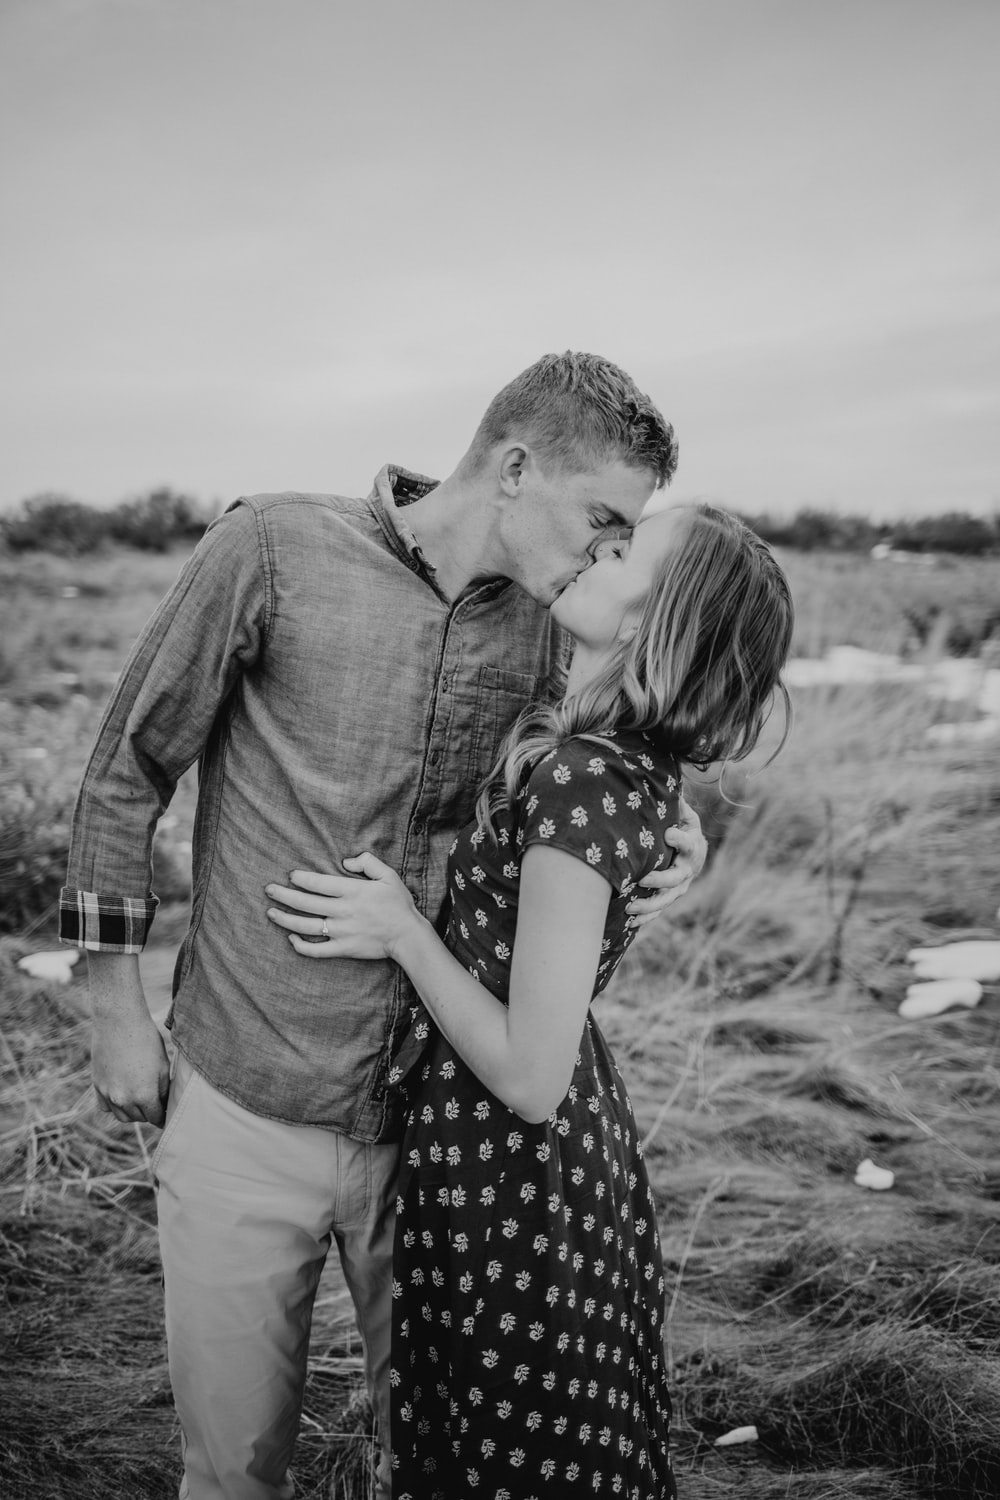 grayscale photography of man and woman standing while kissing on lips